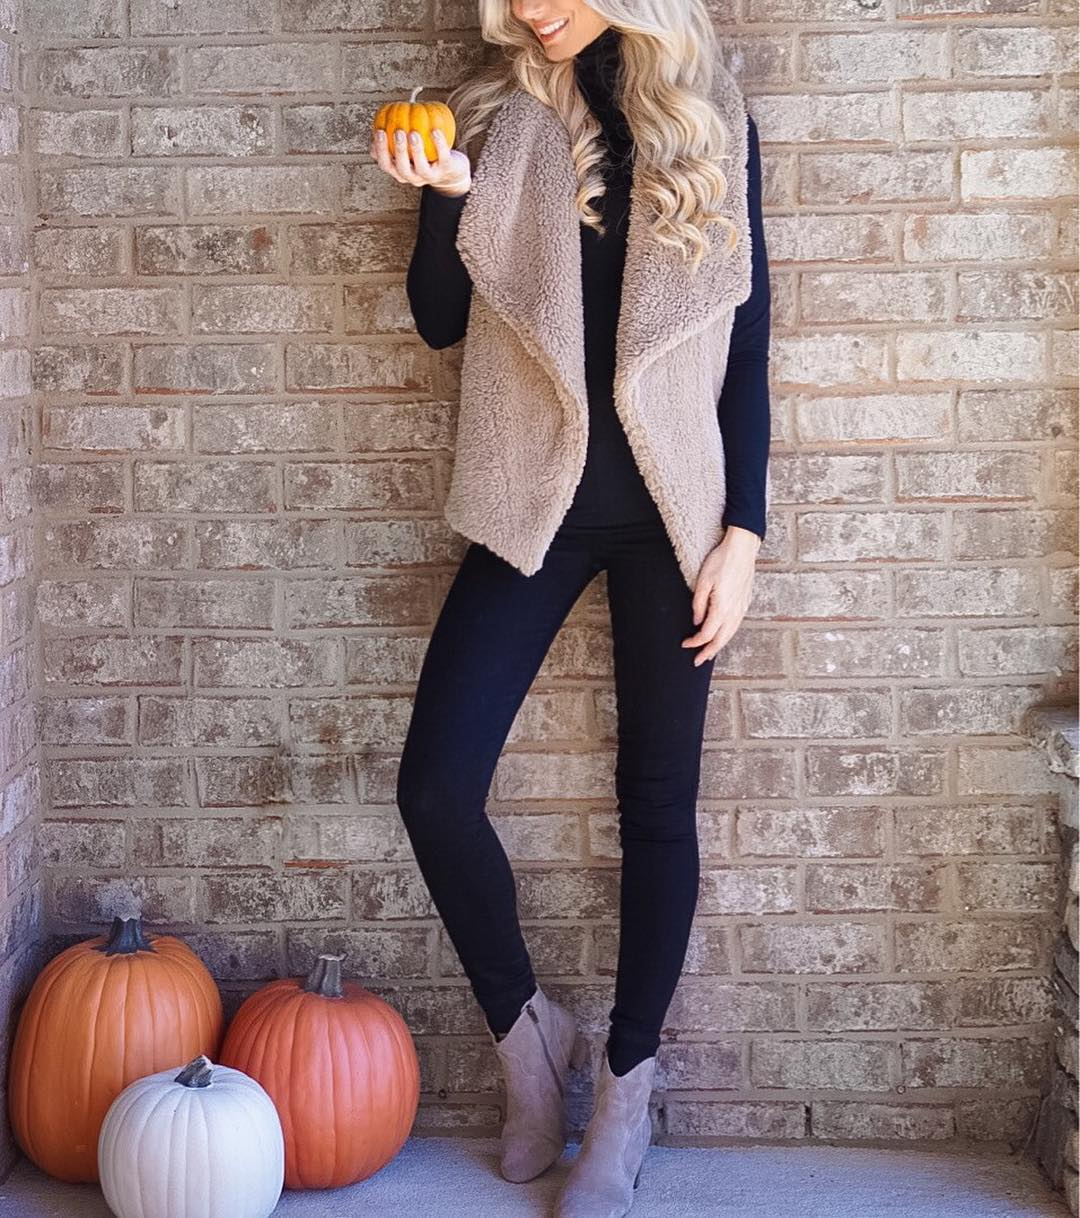 Everyone is already busting out their Christmas trees and I'm over here like, wait it's not even Thanksgiving yet??!!! // Obsessed with this vest, it'a like wearing a teddy bear!! // http://liketk.it/2pCYF #wiw #ootd #fall #fallfashion #liketkit #readyforchristmas